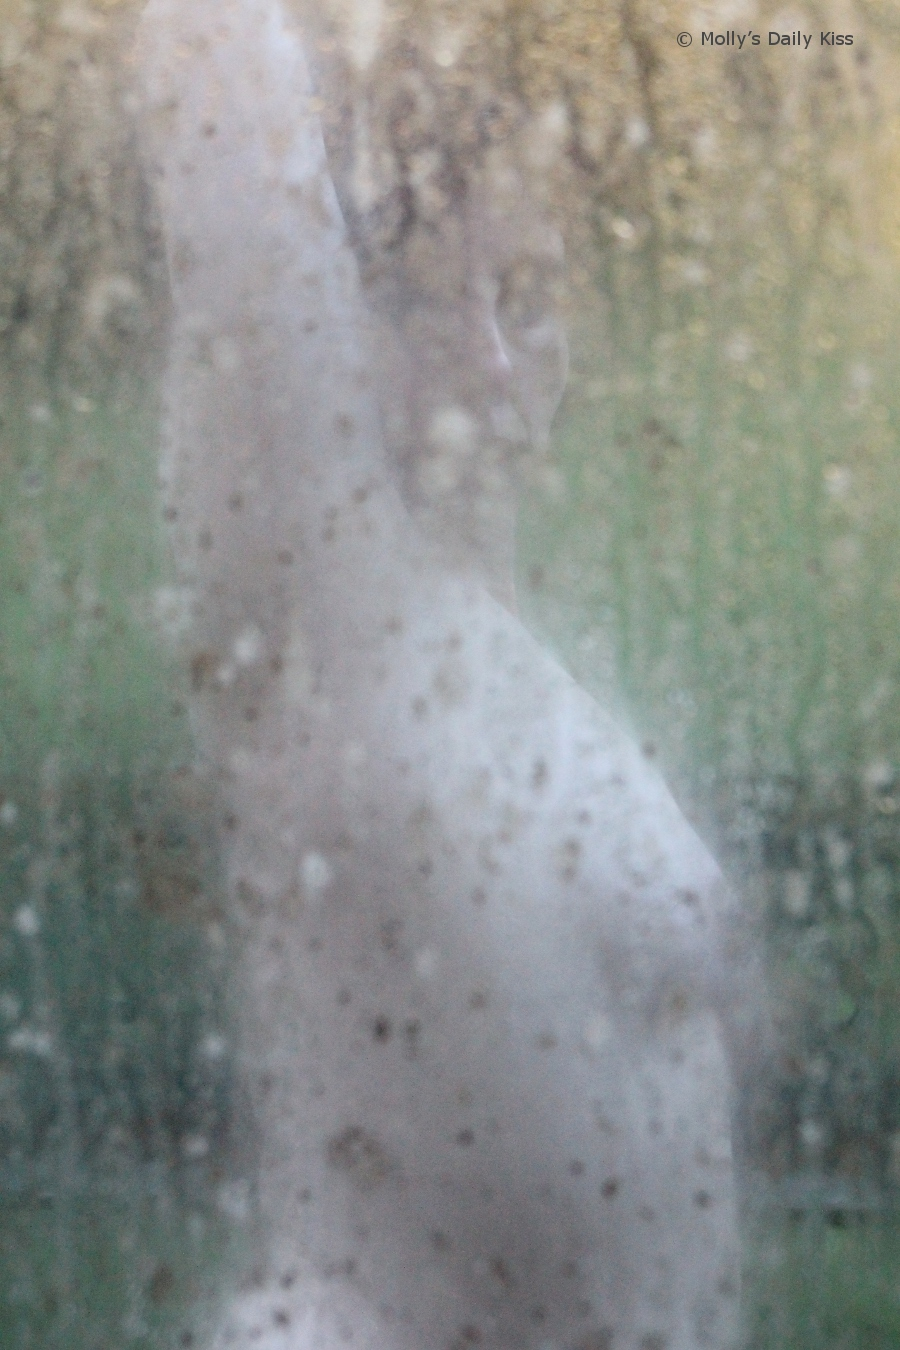 Naked woman through dirty window